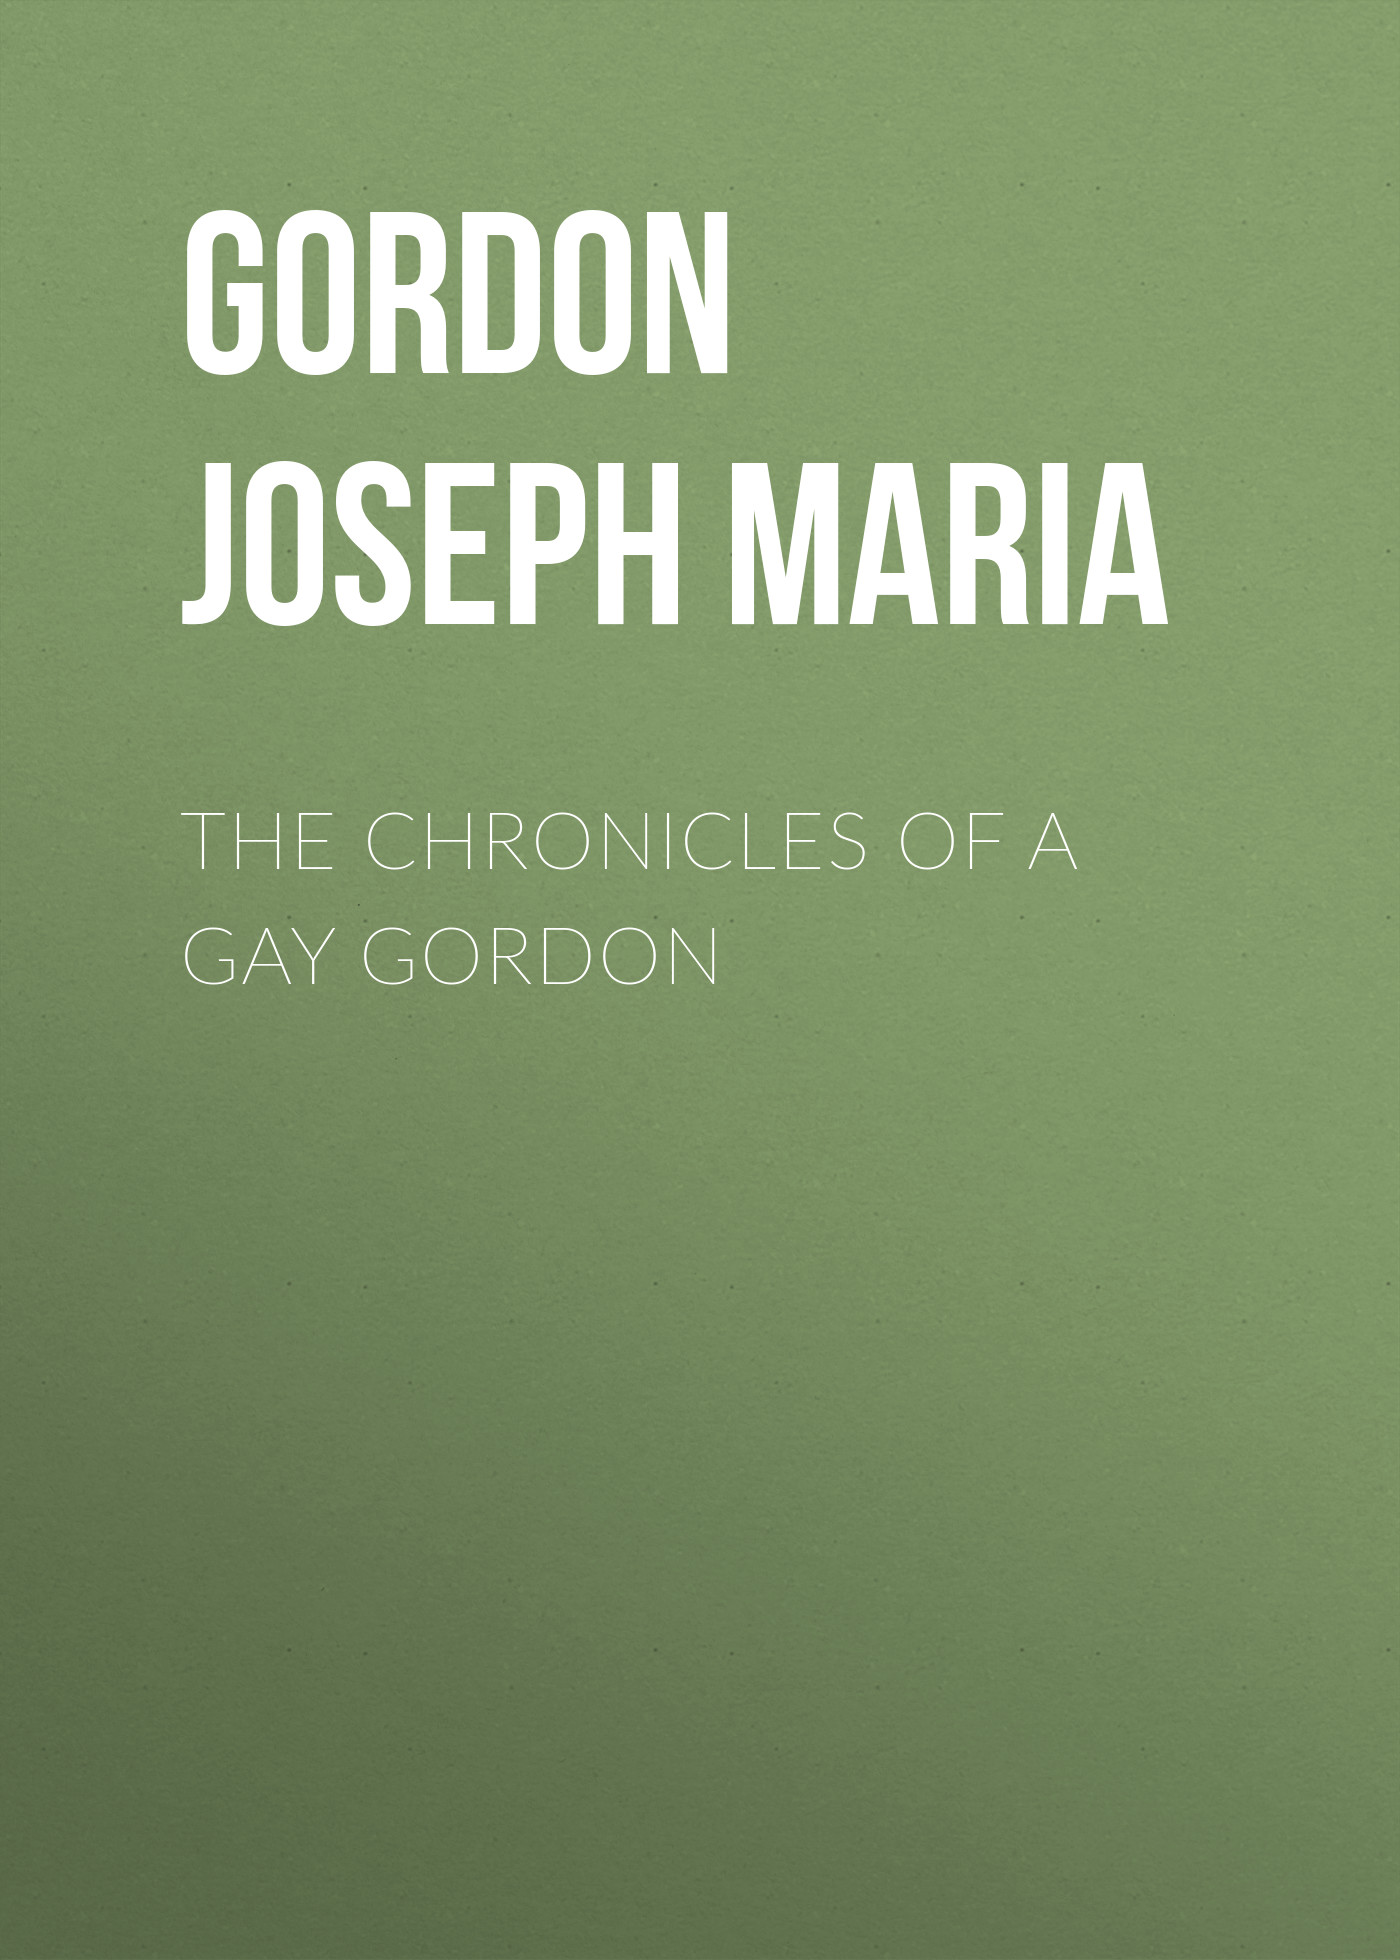 купить Gordon Joseph Maria The Chronicles of a Gay Gordon дешево